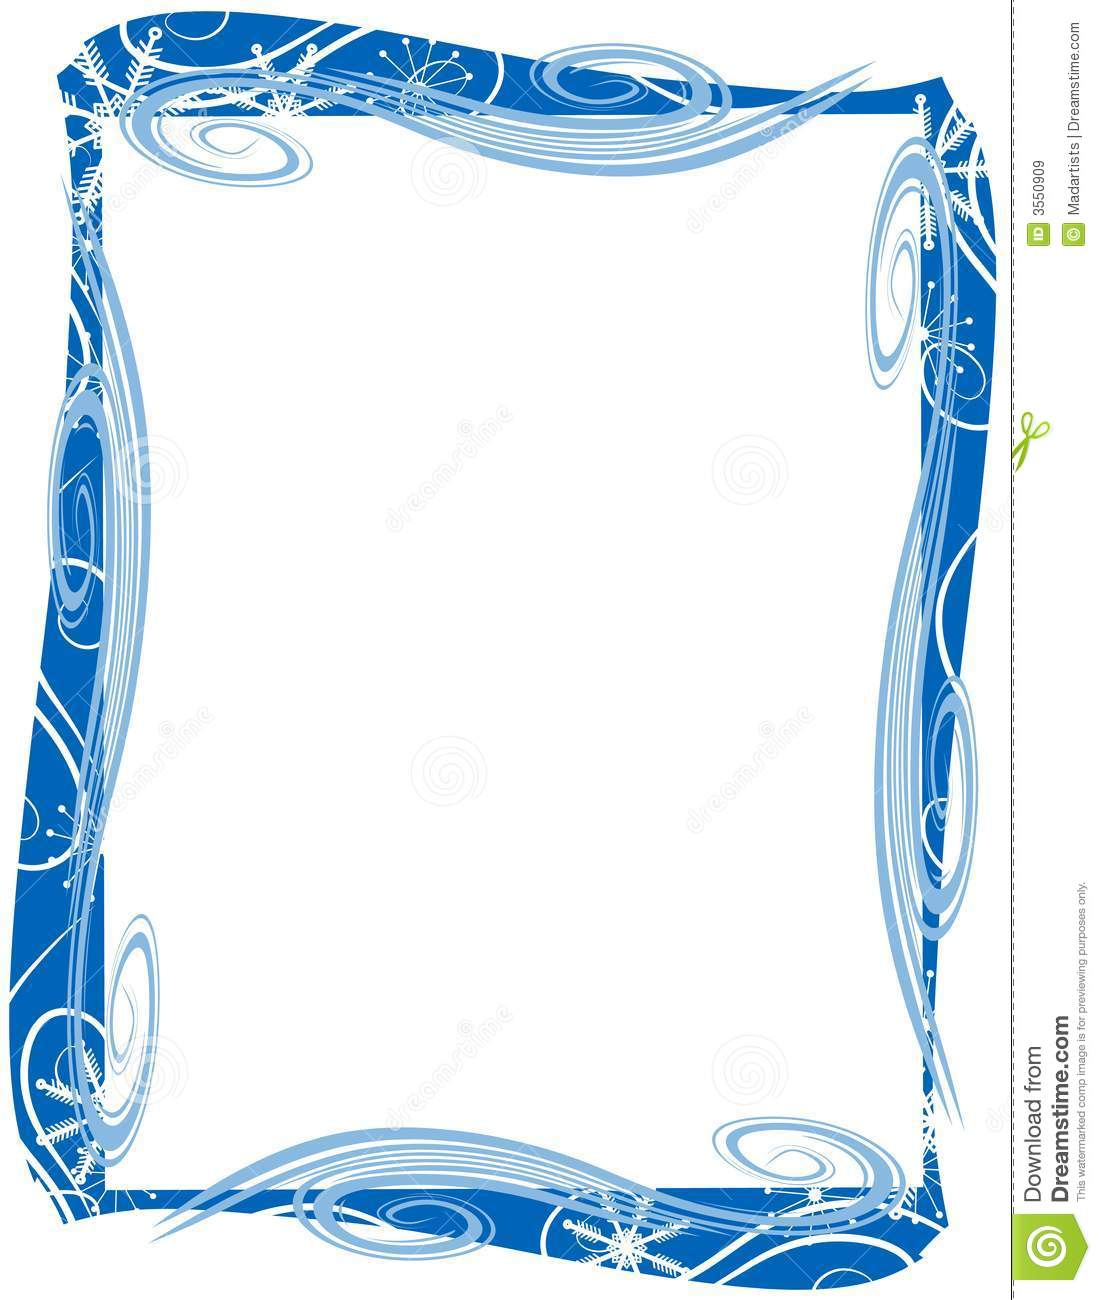 background border illustration featuring an abstract frame or border ...